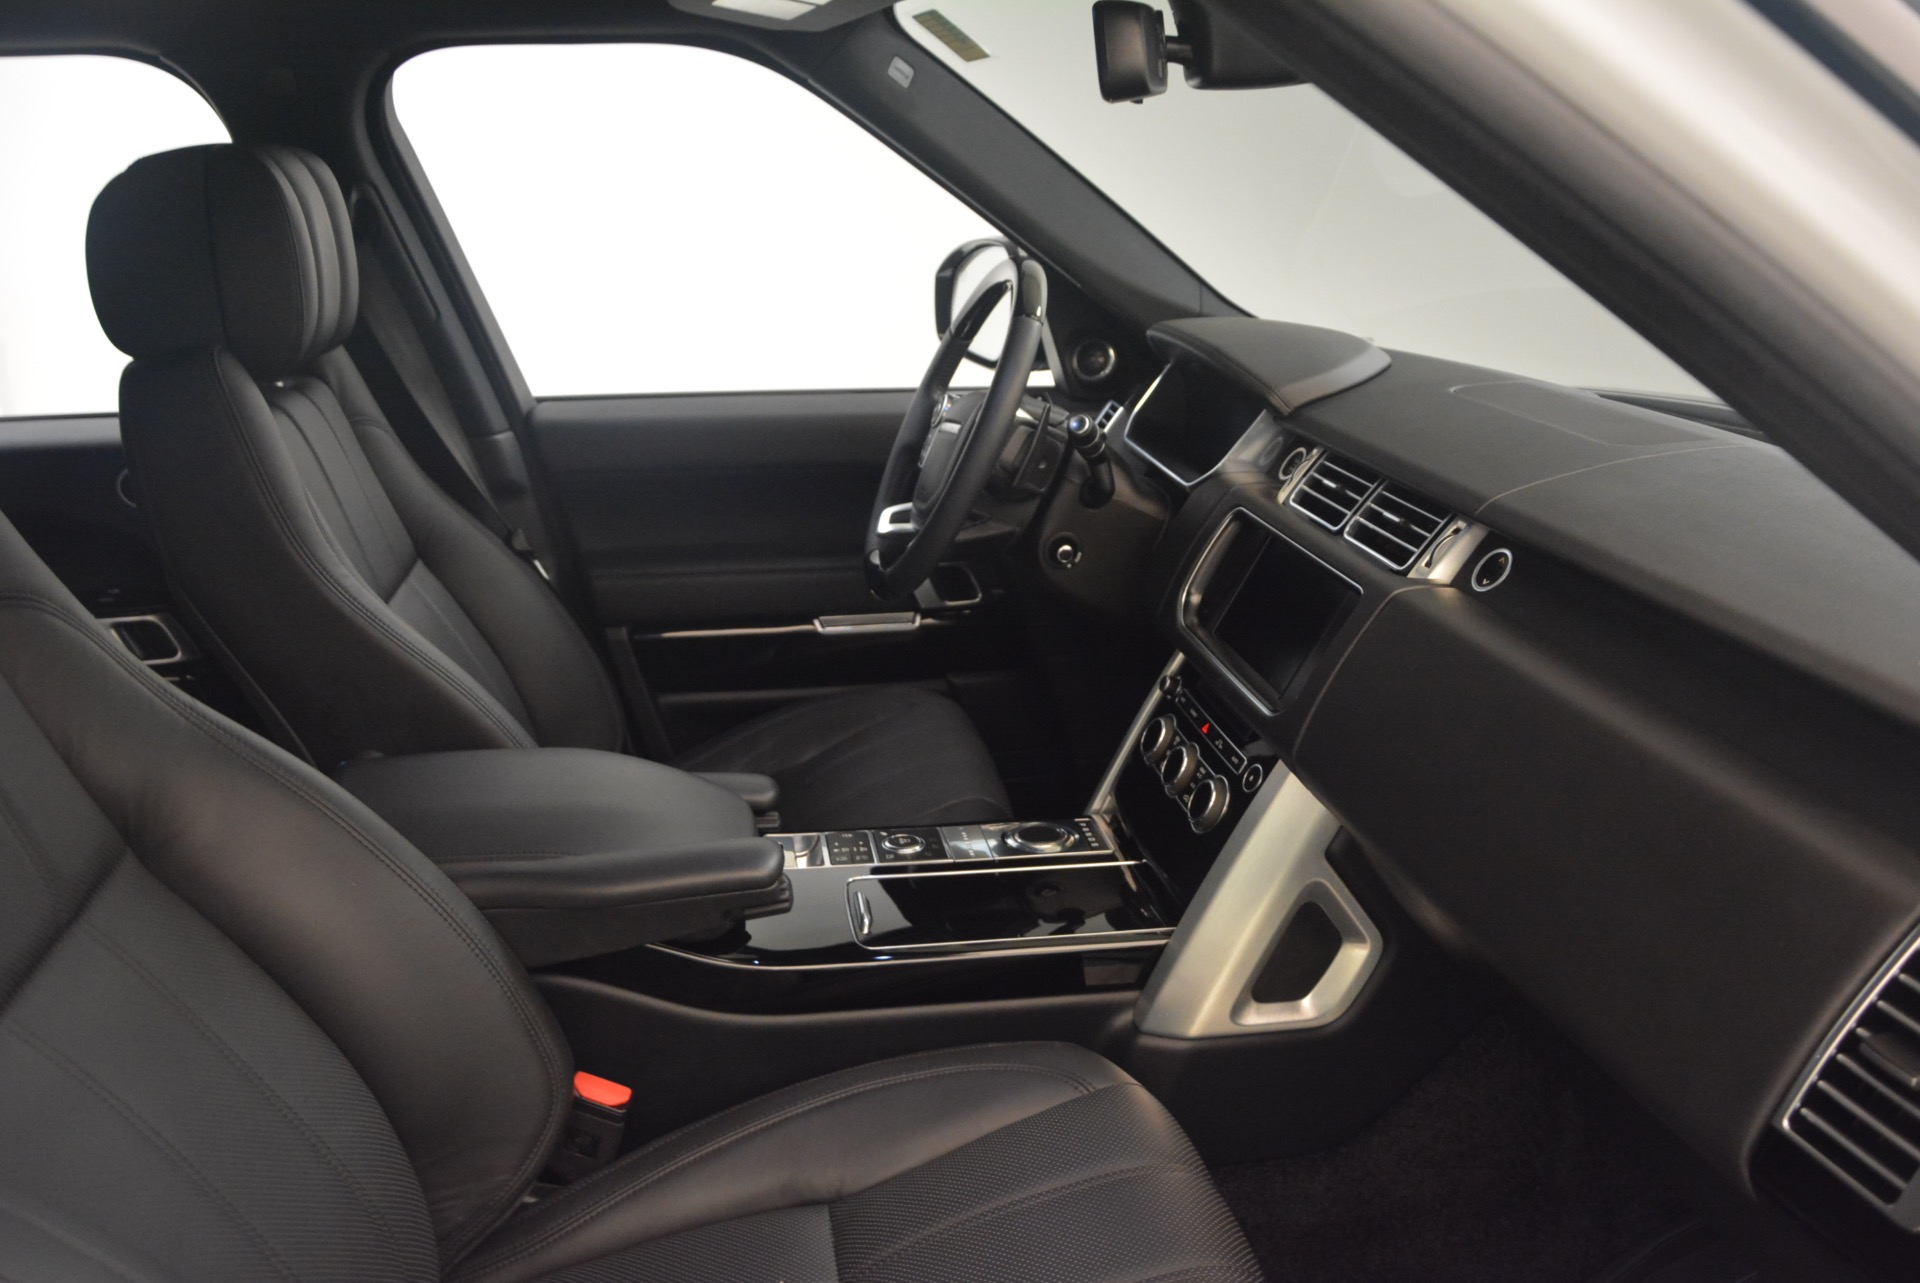 Used 2015 Land Rover Range Rover Supercharged For Sale In Greenwich, CT 1292_p29